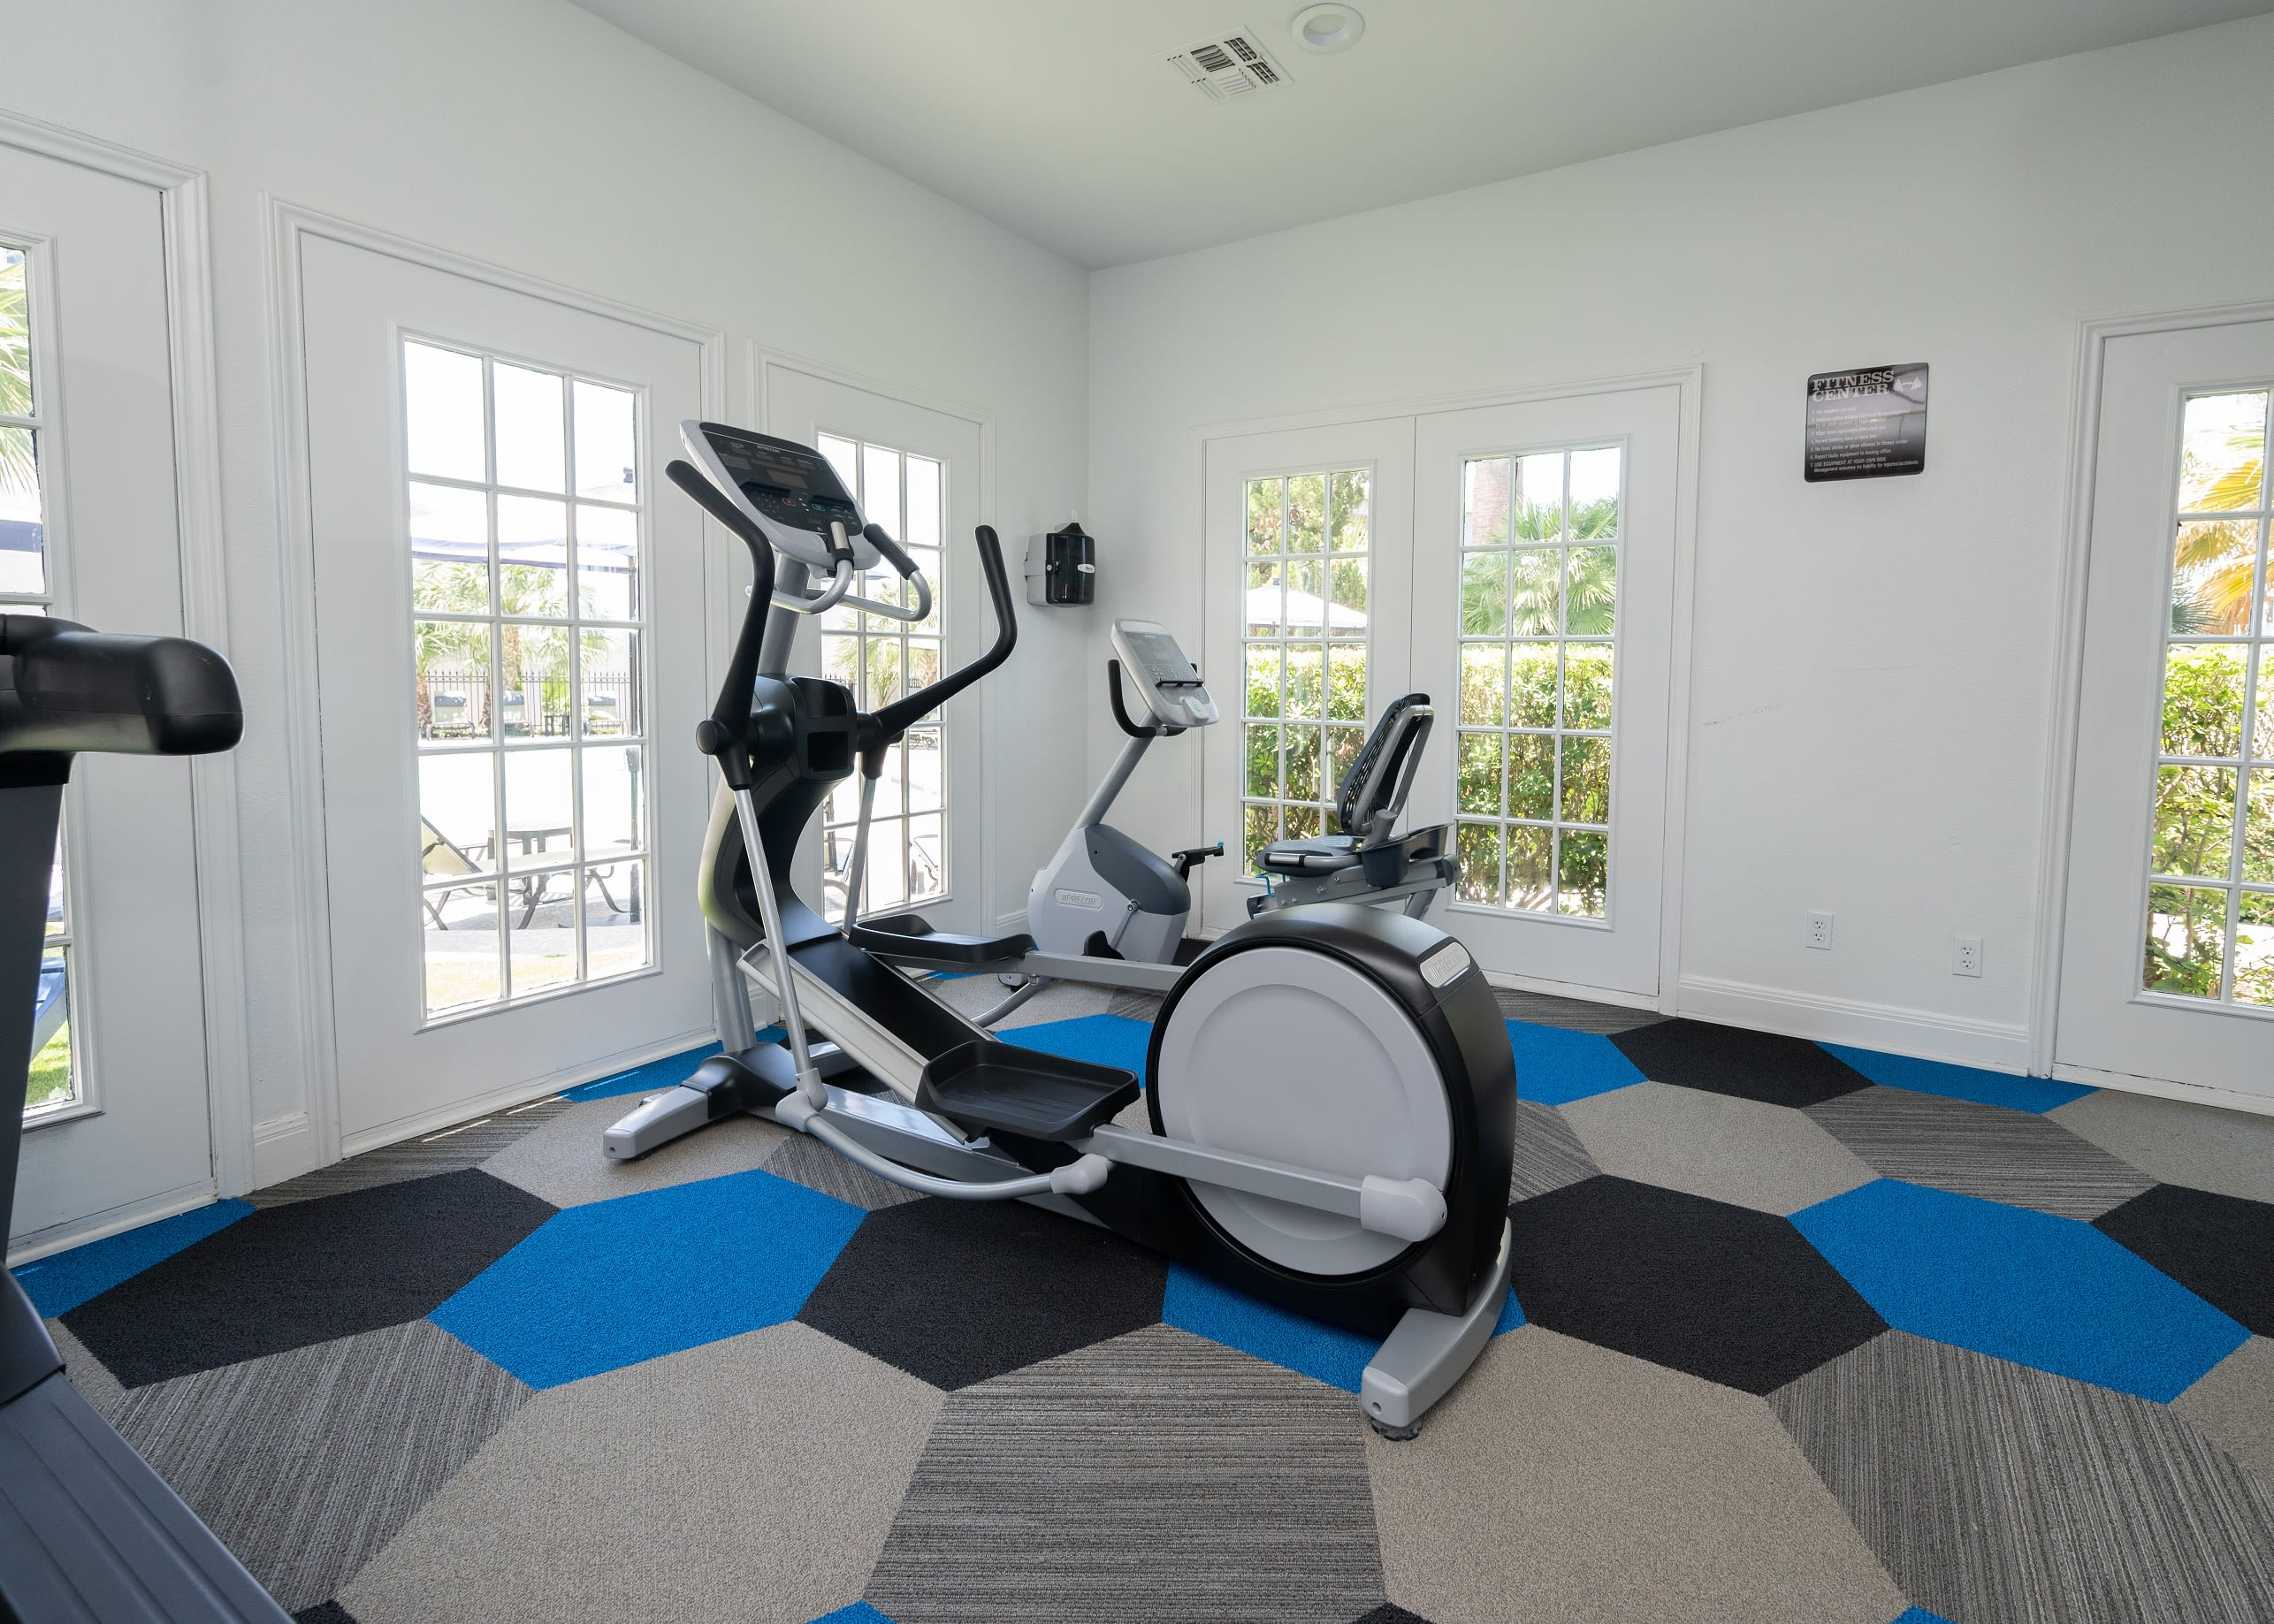 Fitness center at Royal Palms in San Antonio, Texas